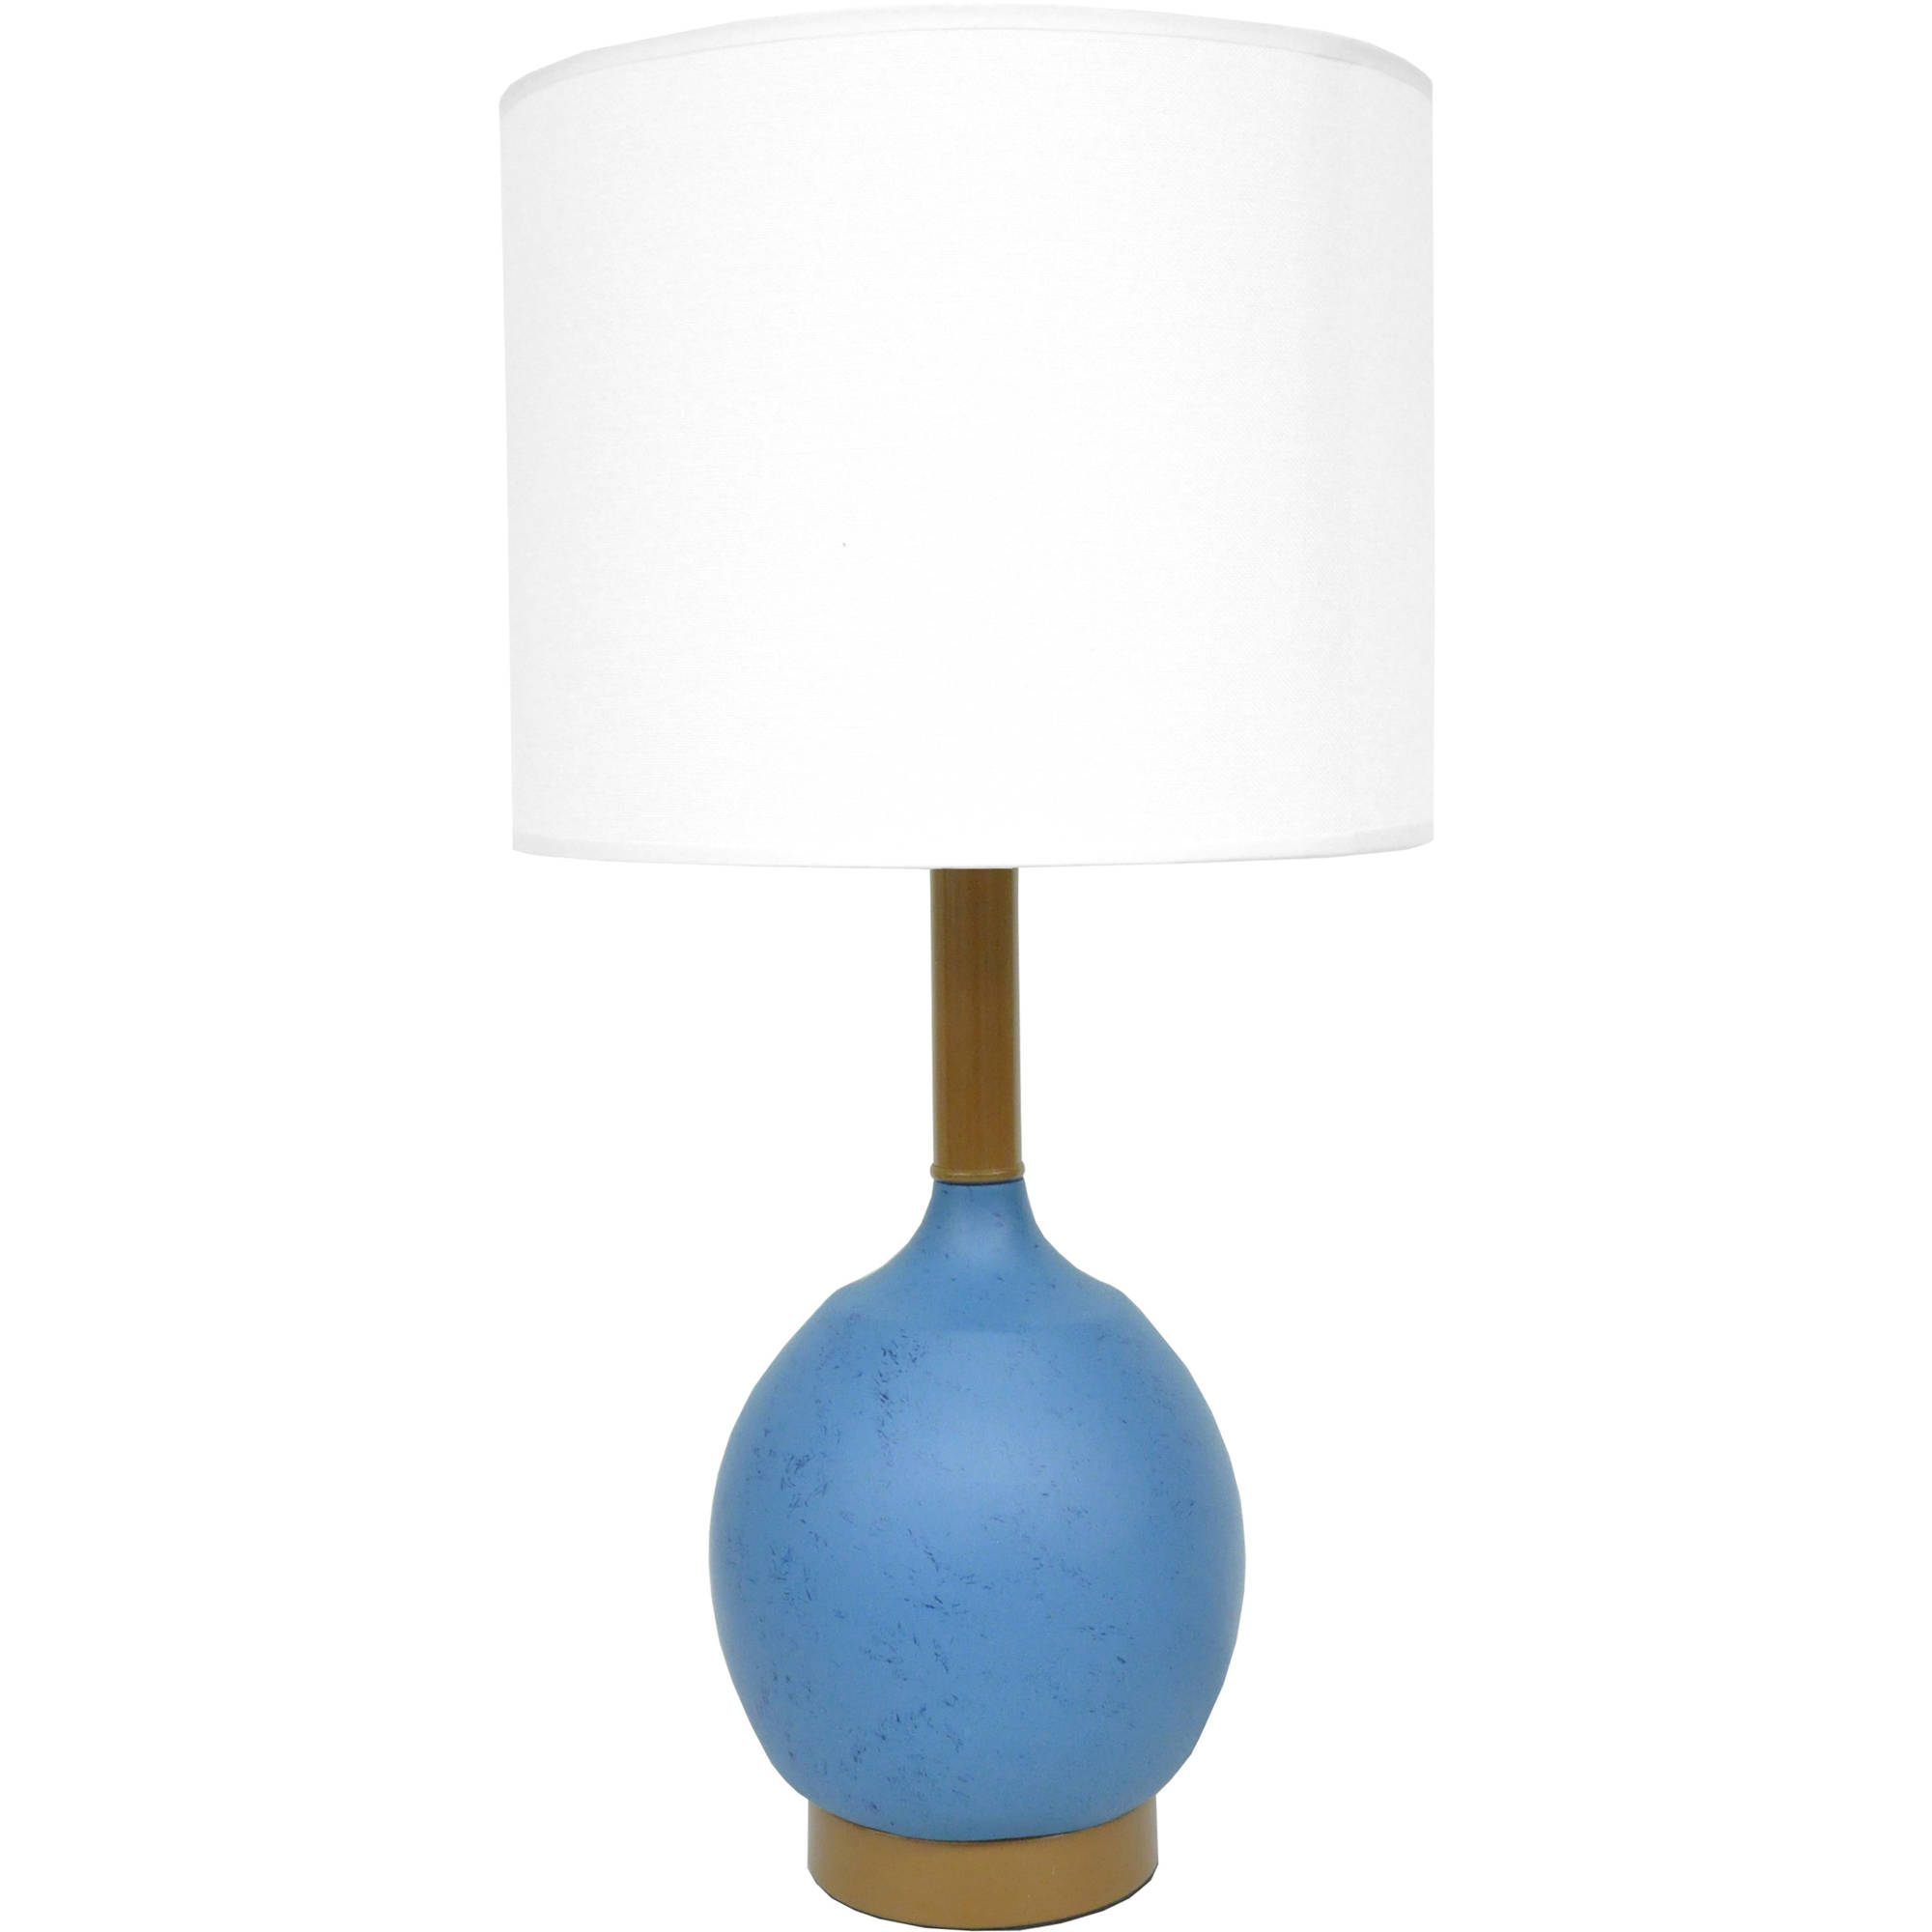 Mainstays Modern Table Lamp, Blue by Idea Nuova